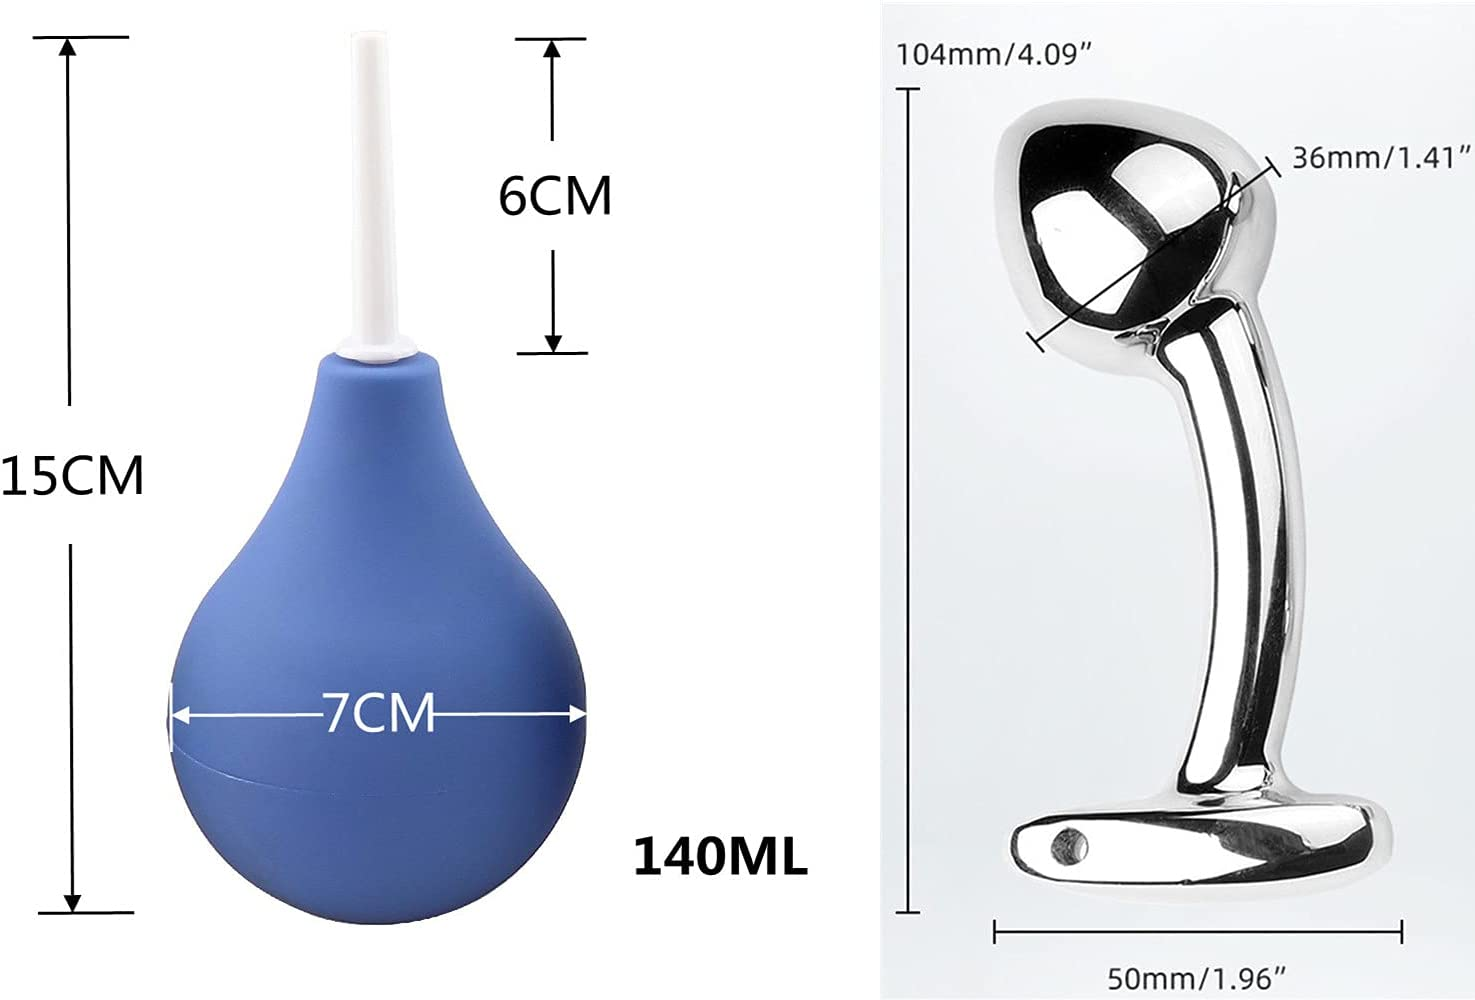 Butt Now free shipping Anal Plug Trainer Genuine Set Men for Toys masturbetion Douche